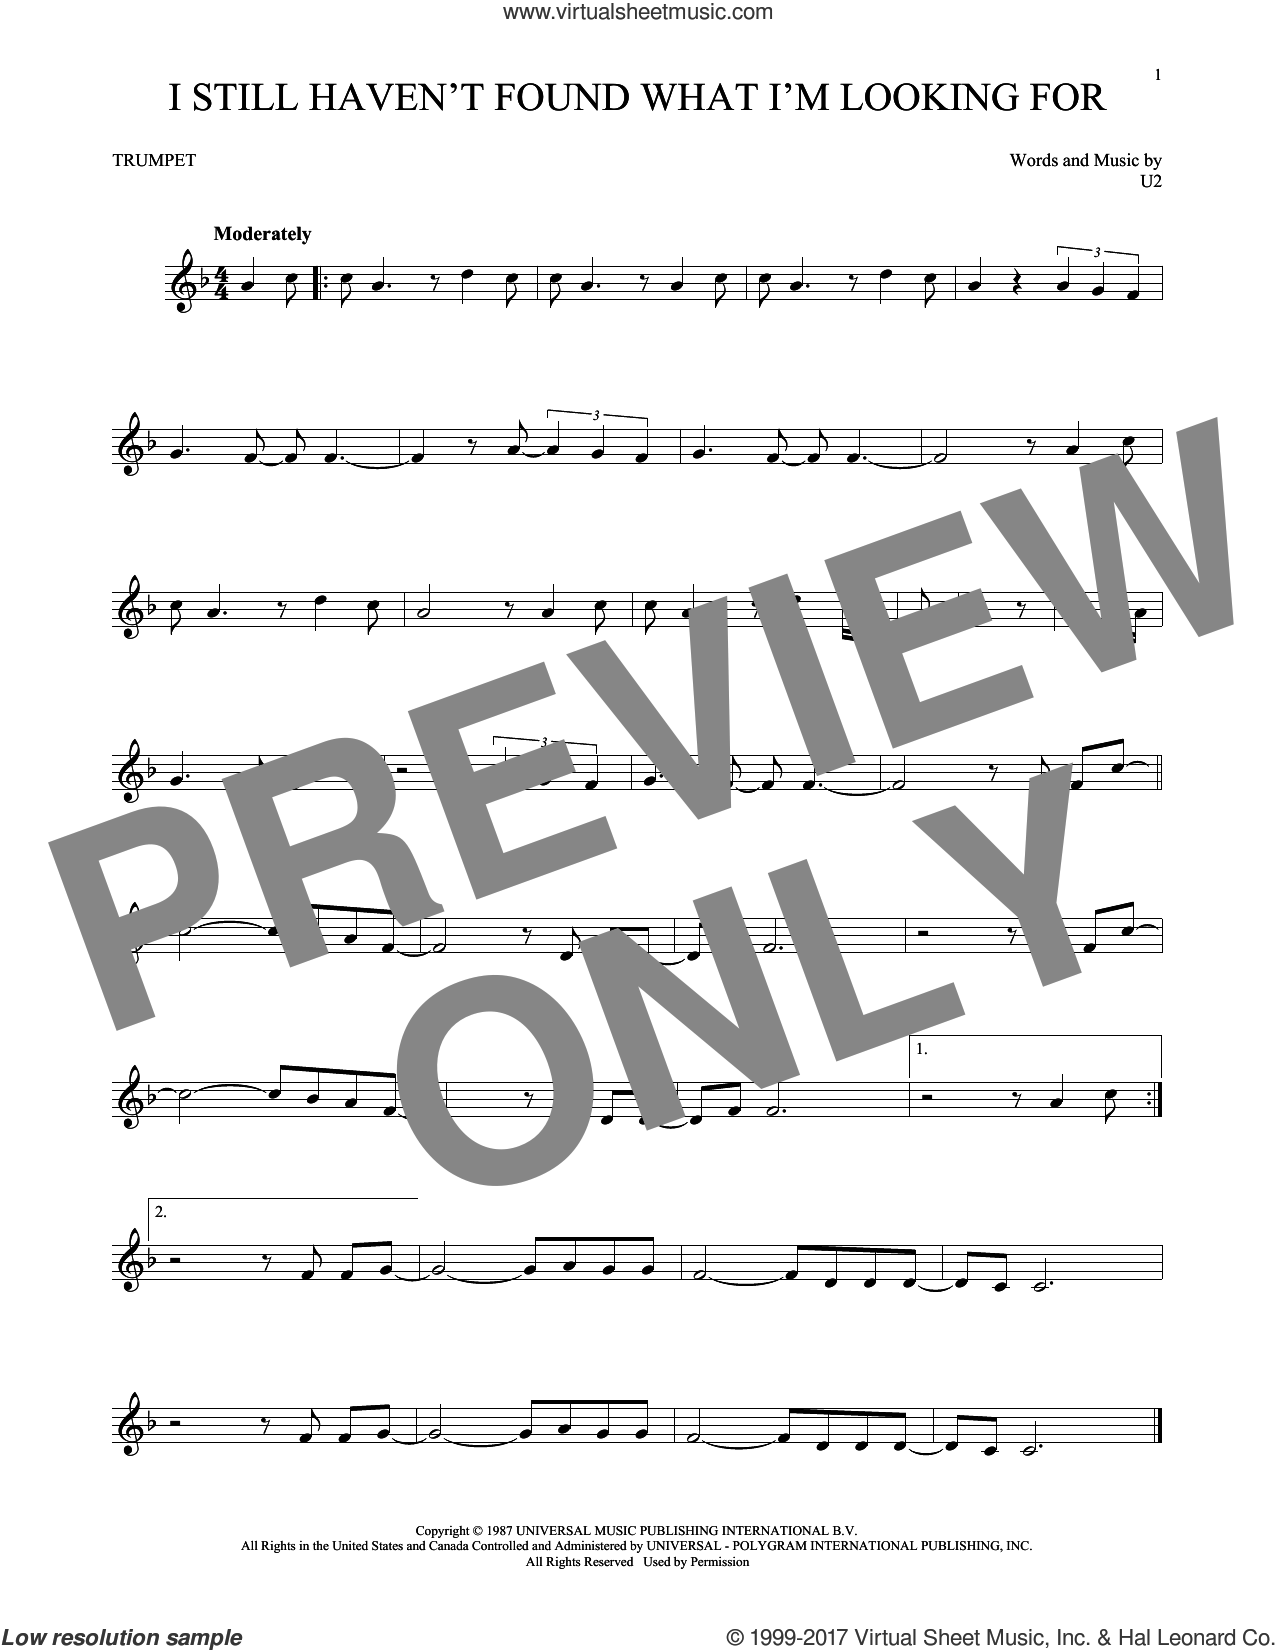 I Still Haven't Found What I'm Looking For sheet music for trumpet solo by U2. Score Image Preview.